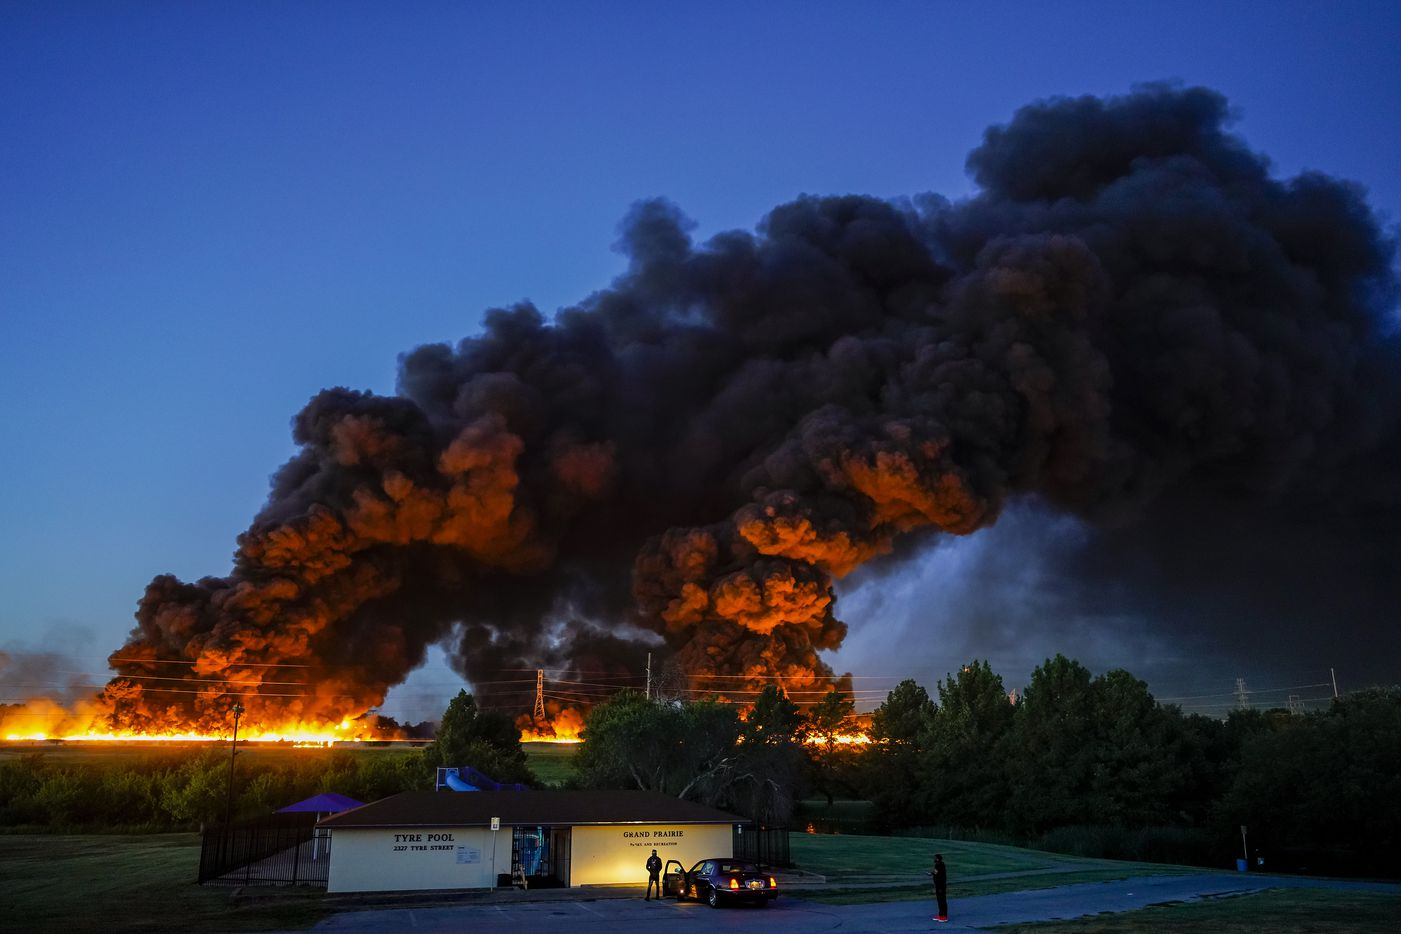 A plume of smoke rises over people gathered in Tyre Park to watch fire crews battle a massive blaze in an industrial area of Grand Prairie, in the early morning hours of Wednesday, Aug. 19, 2020.